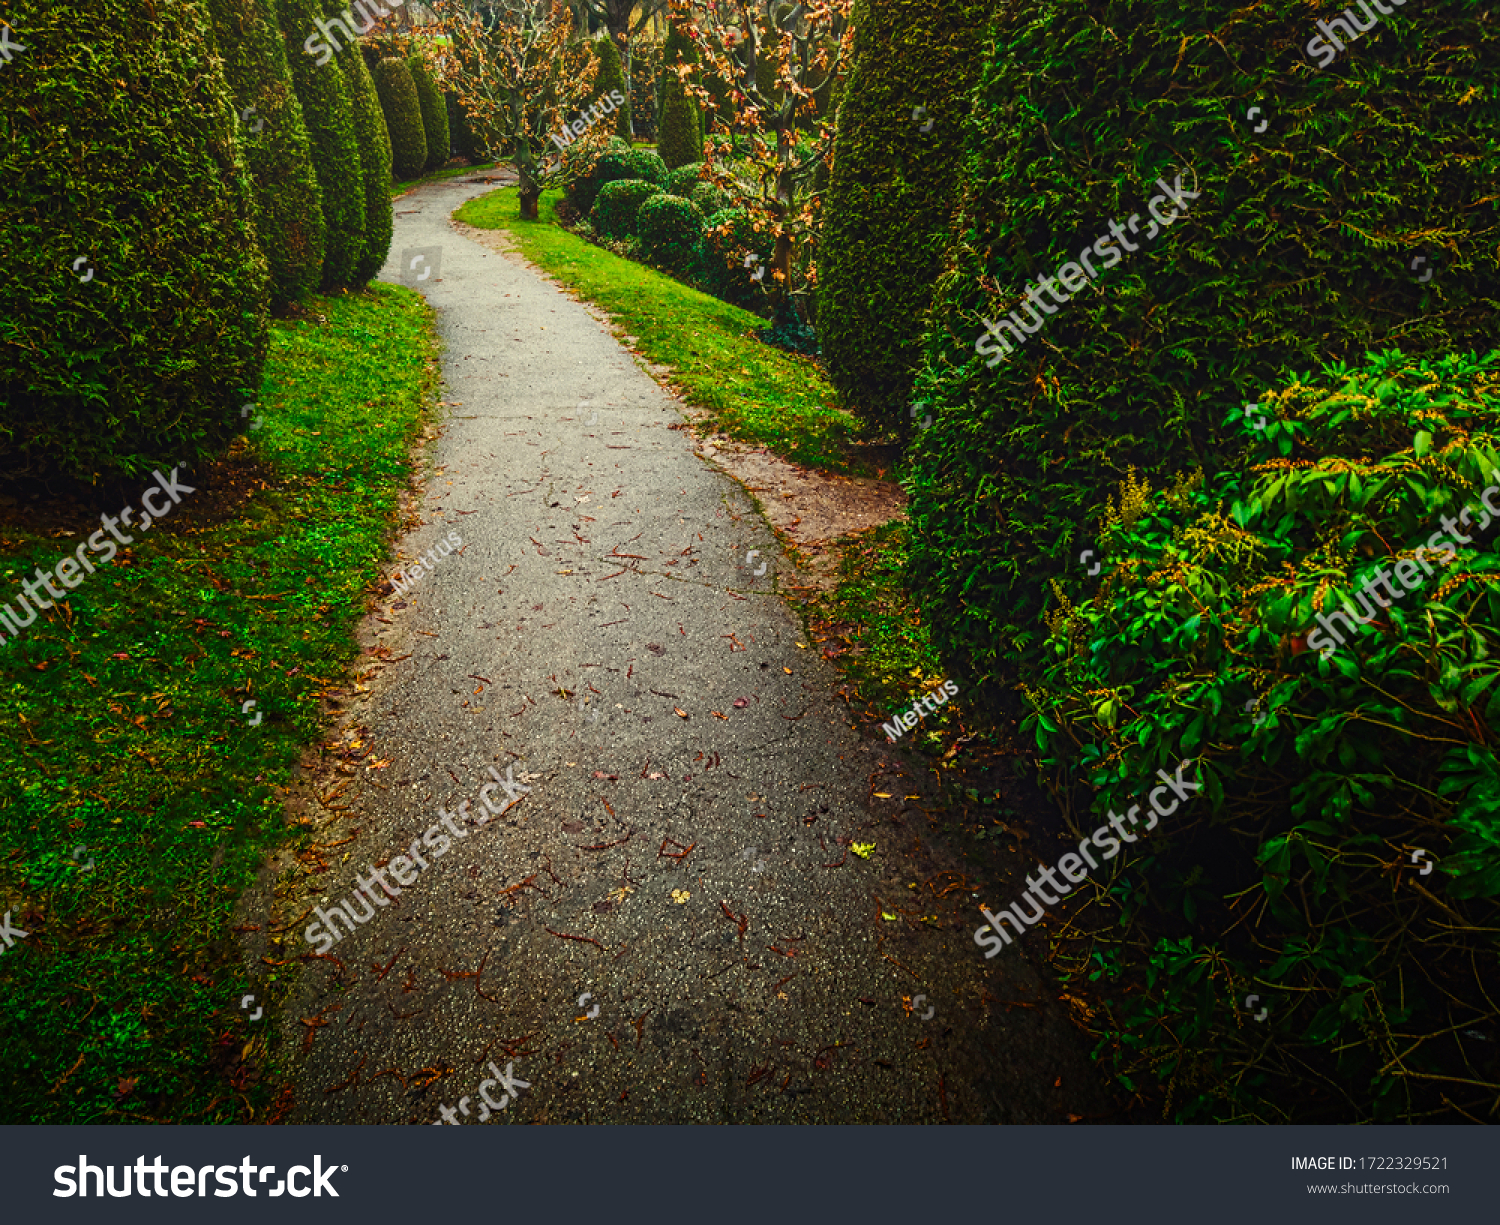 stock-photo-the-path-in-the-garden-is-co